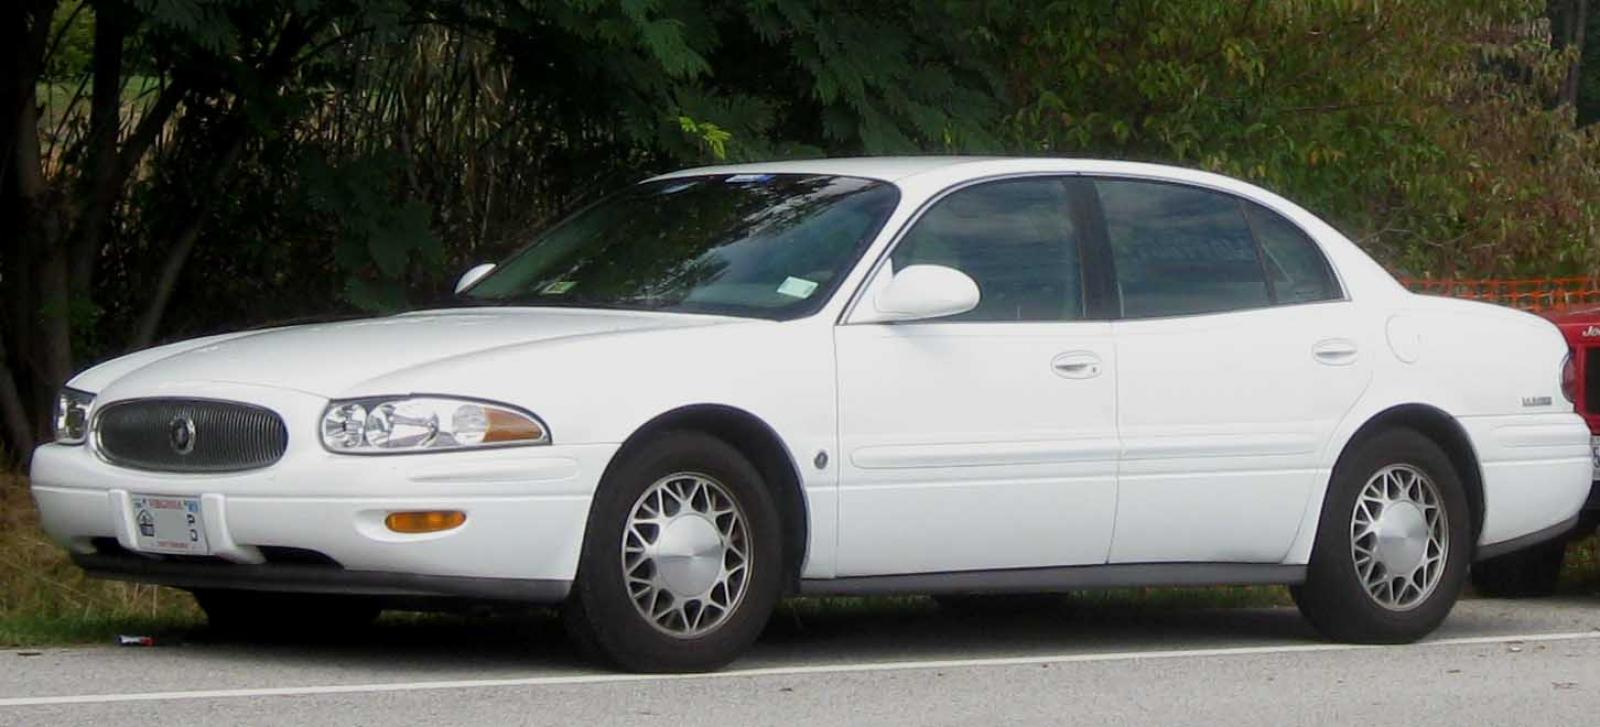 2000 buick lesabre information and photos zombiedrive rh zombdrive com 2000 buick lesabre owners manual 2000 buick lesabre owners manual